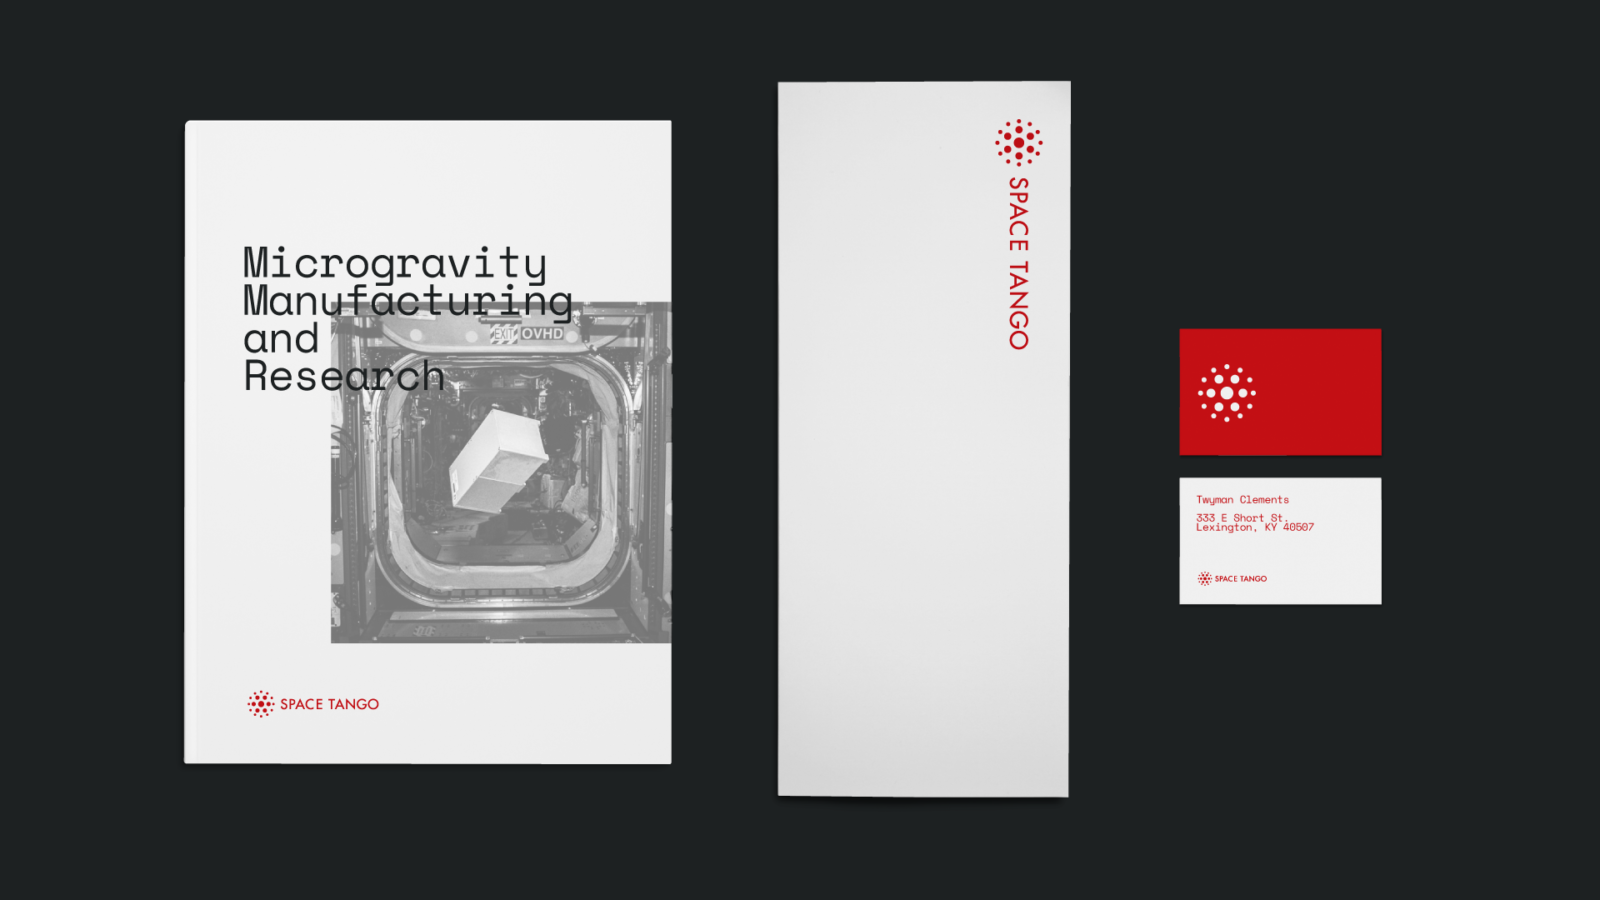 Brand Identity for Space Tango, a microgravity research and manufacturing stationery and marketing materials